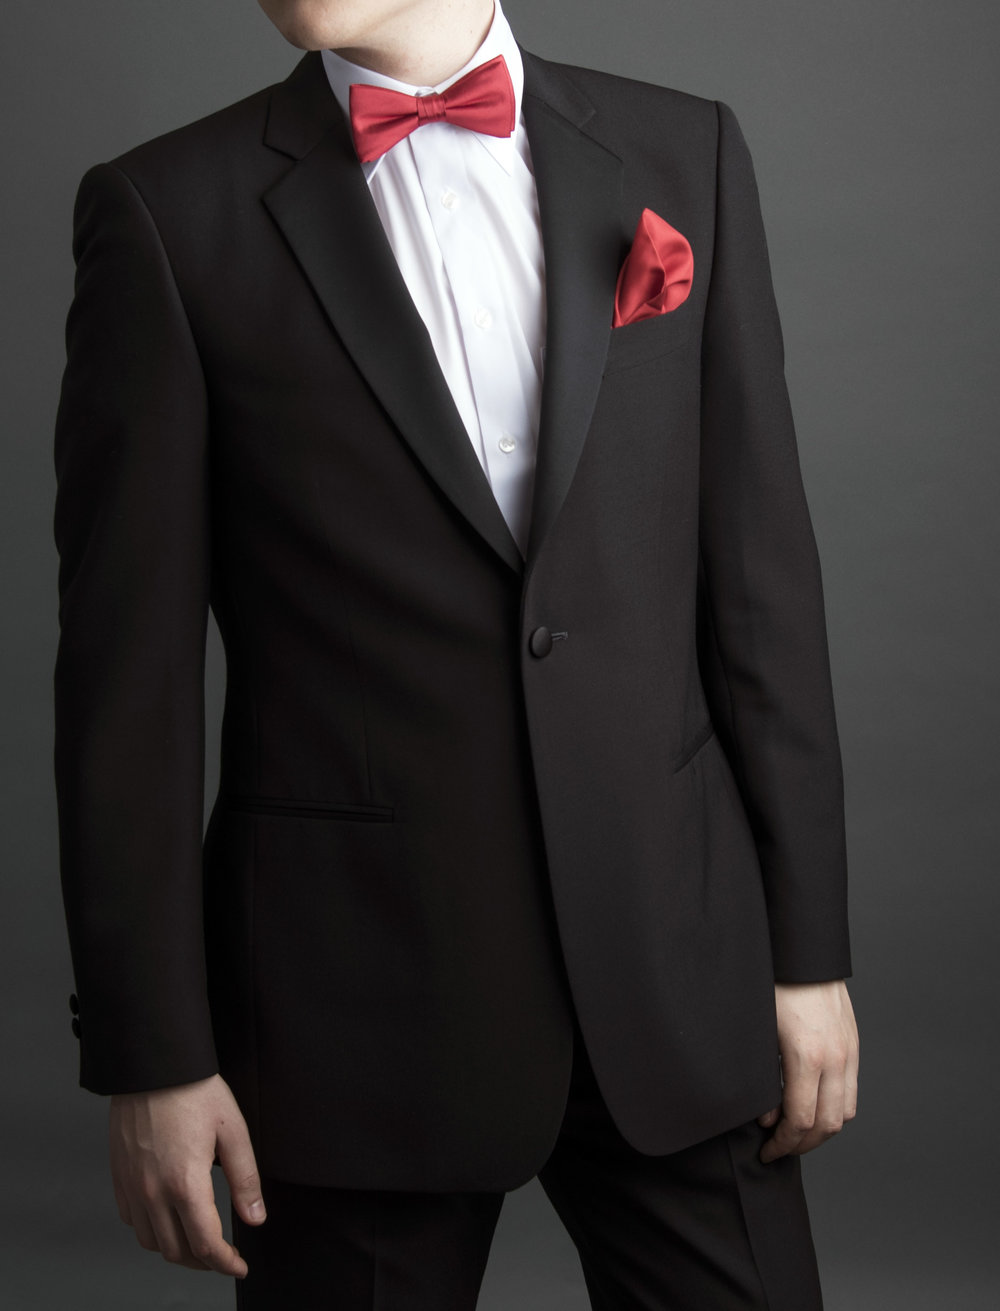 Dinner jacket with red bow tie and pocket square for web.jpg